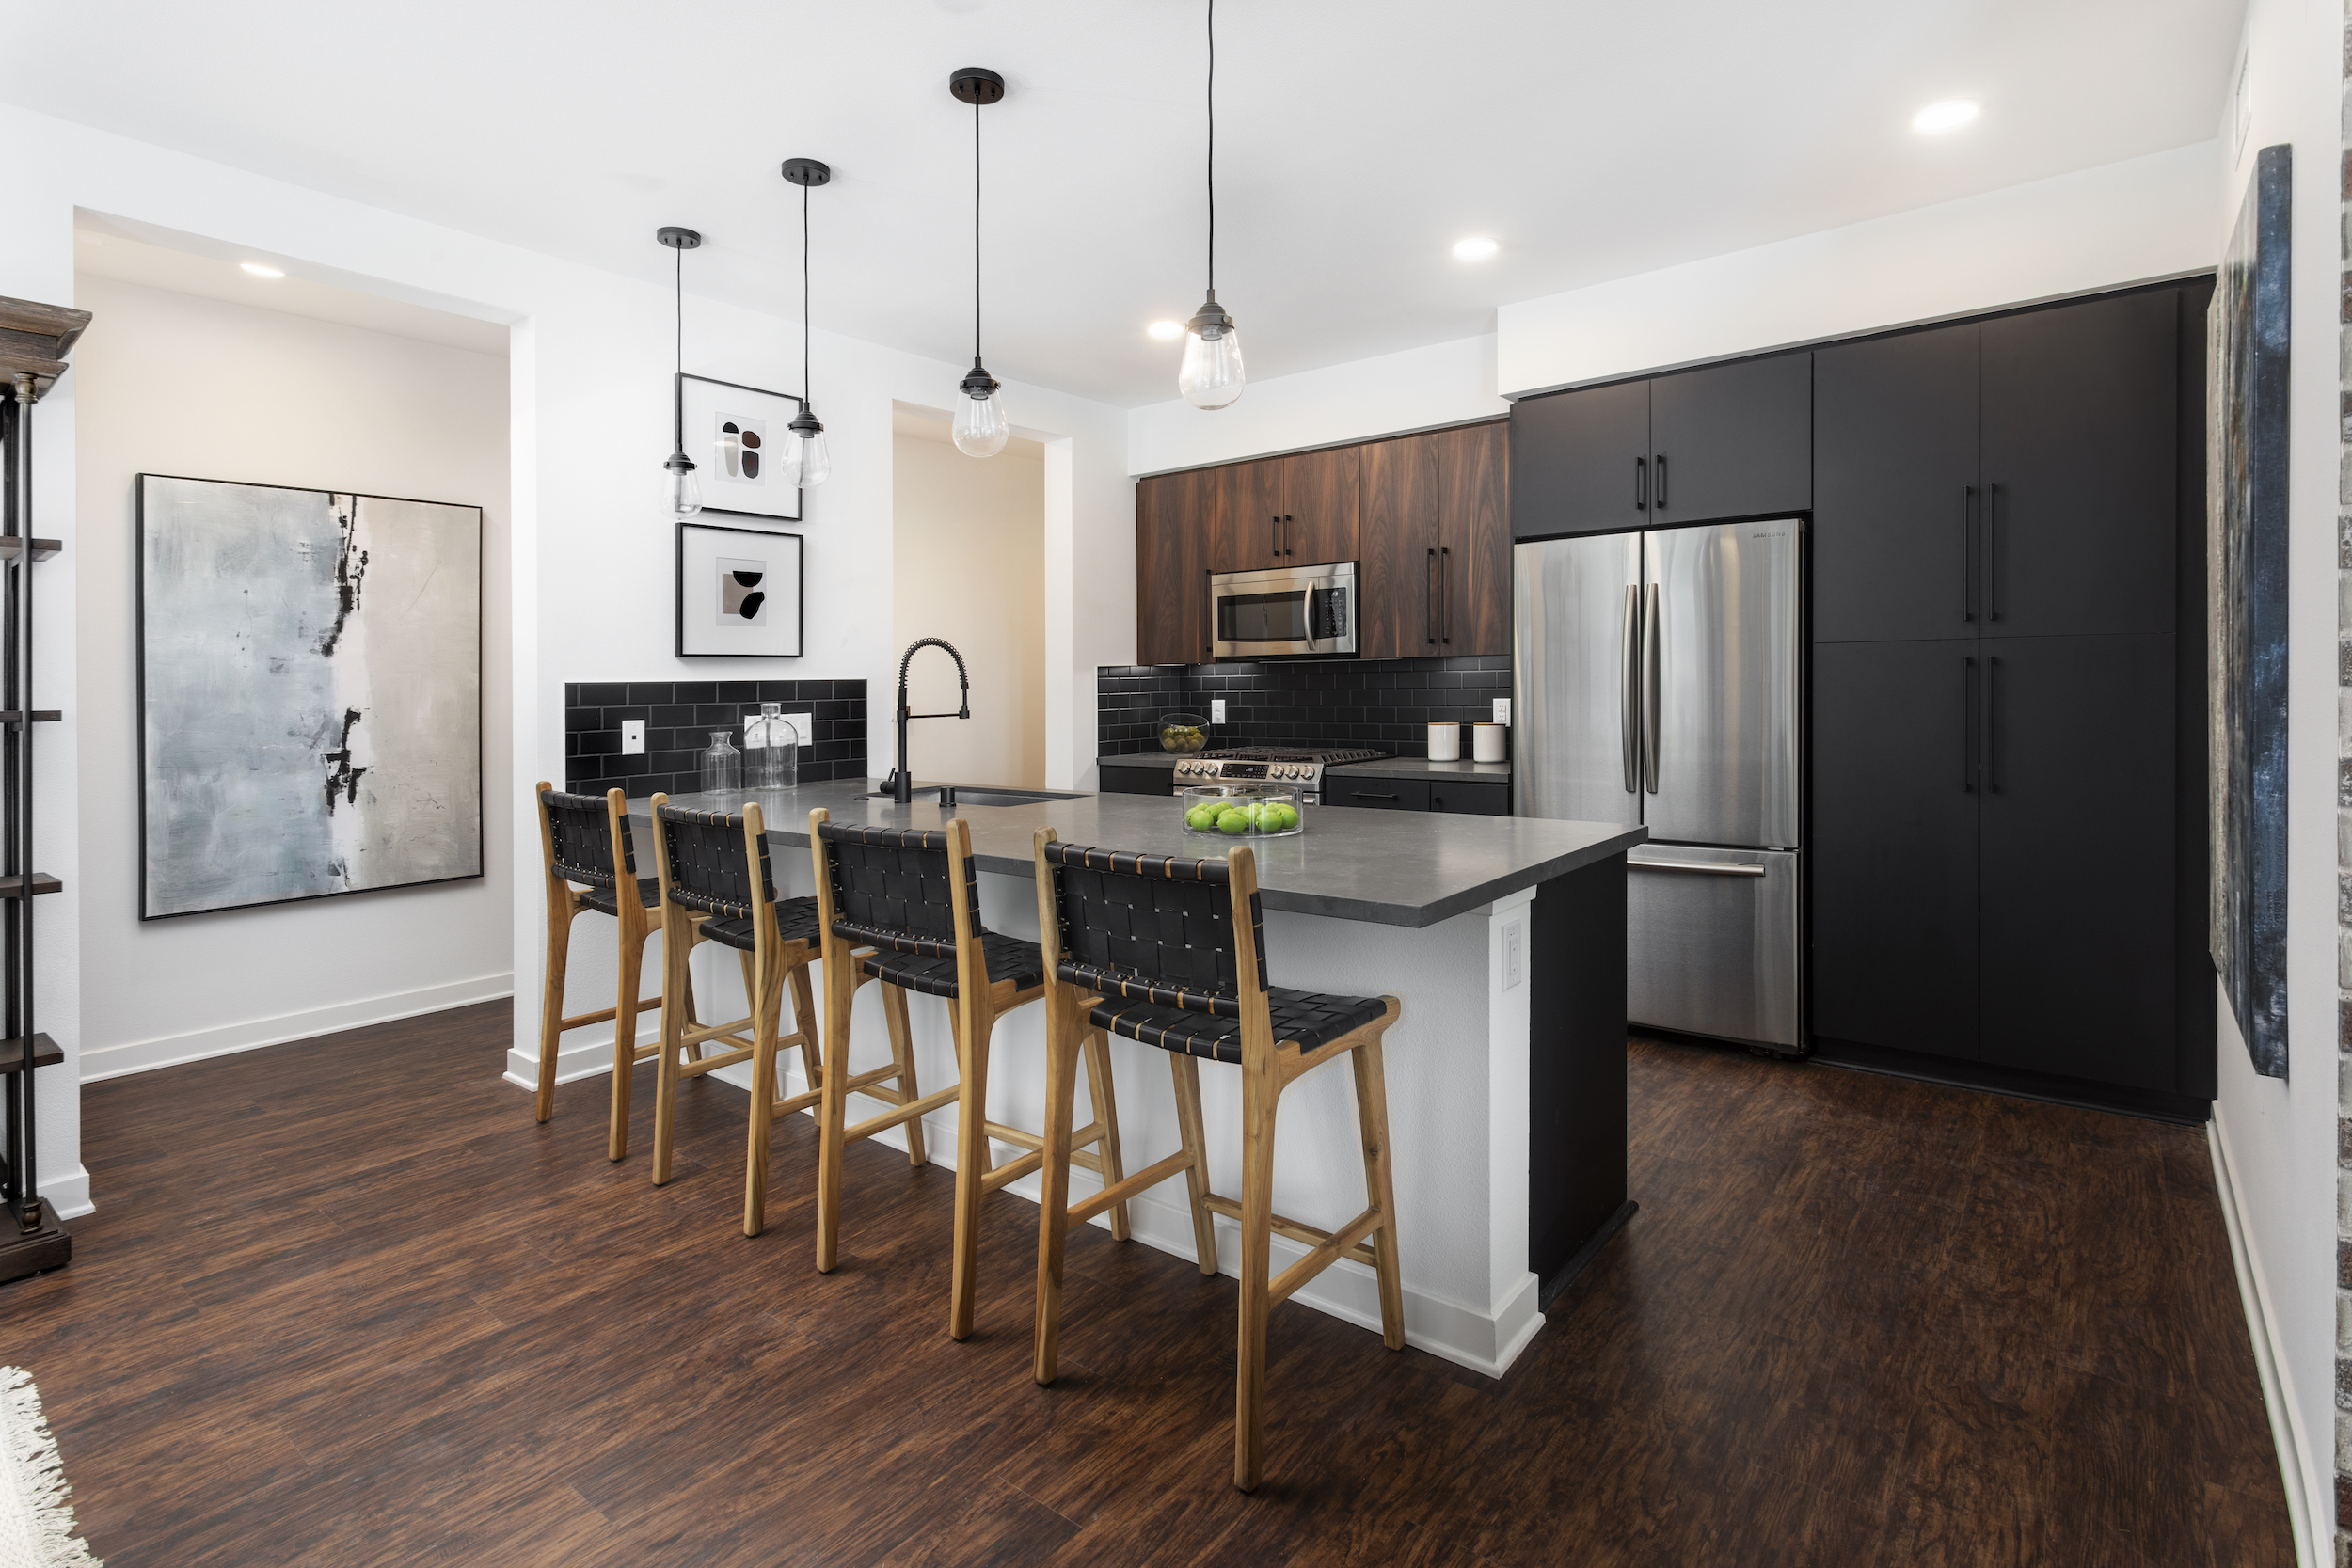 Artistry modern kitchen with black cabinetry and stainless steel appliances at Broadstone Archive Apartments